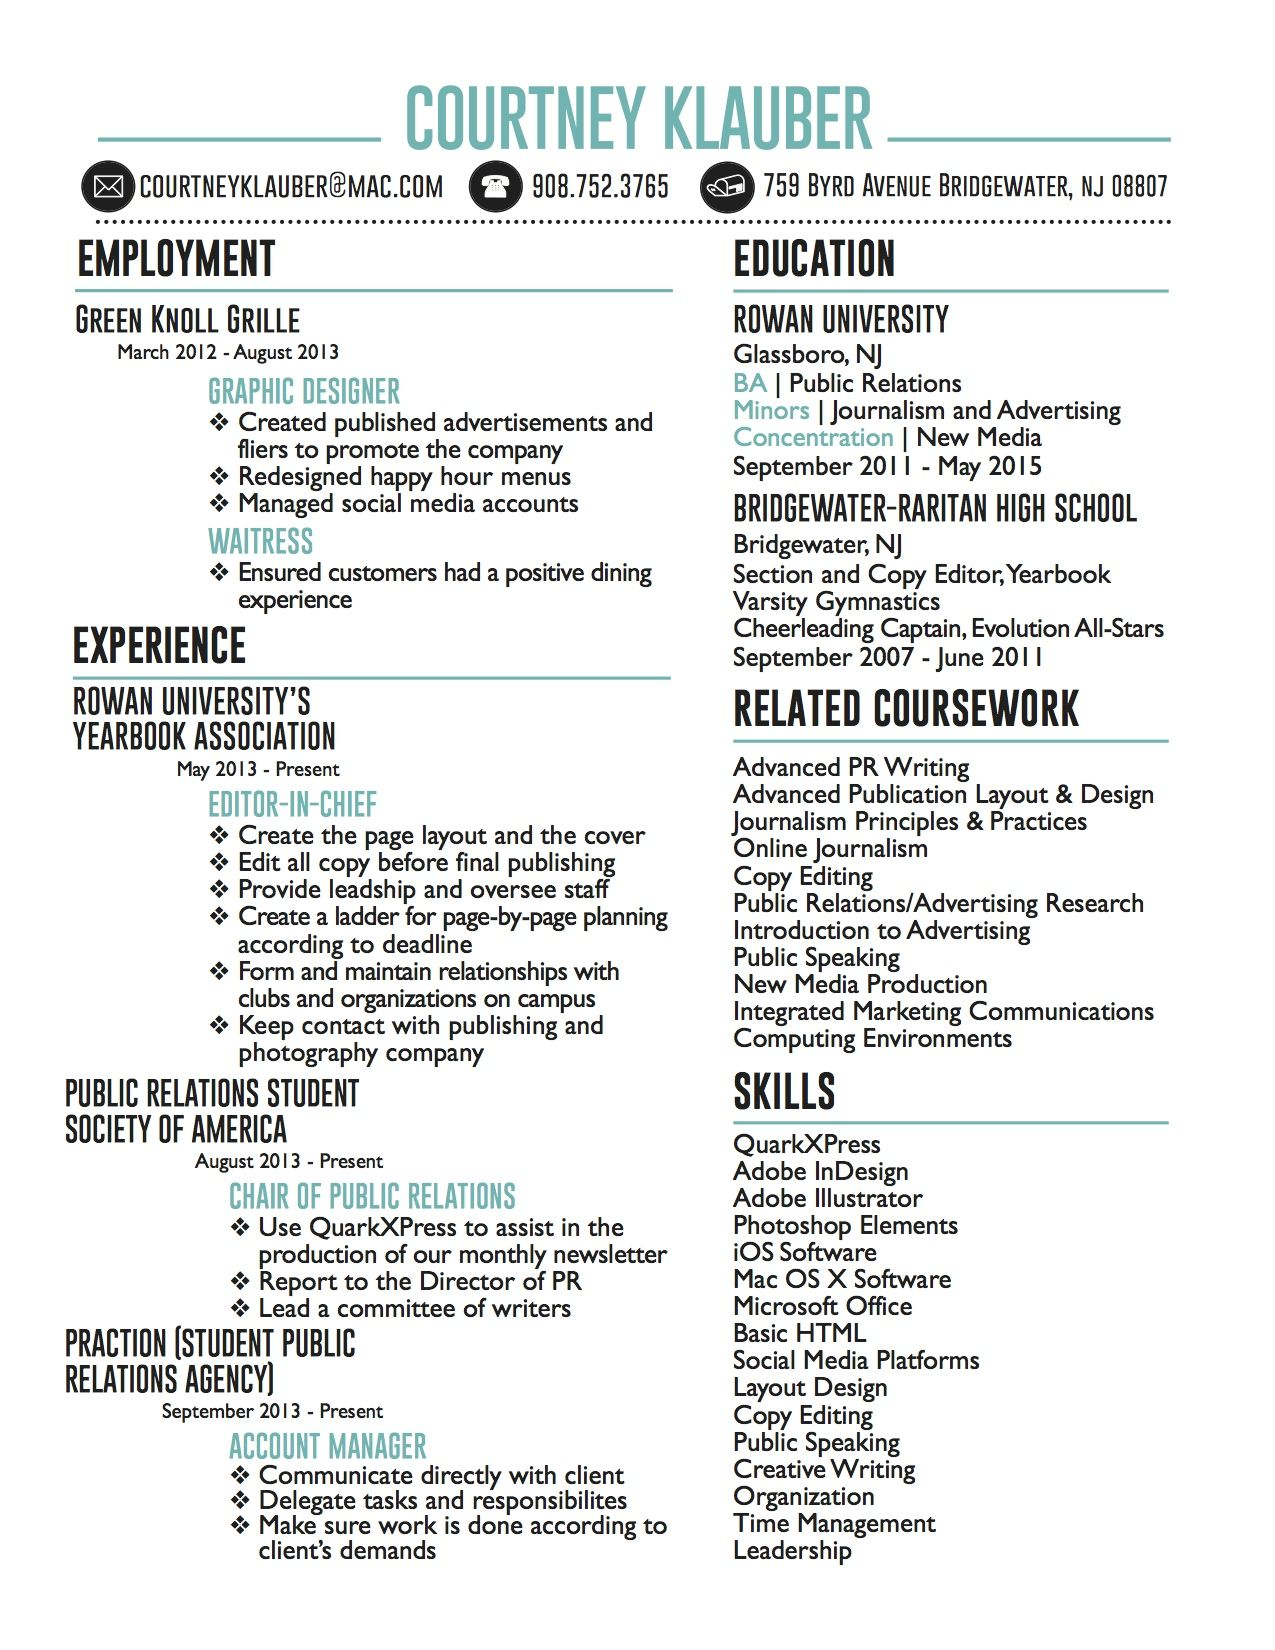 creative-resume.jpg (1275×1650) | SMM | Pinterest